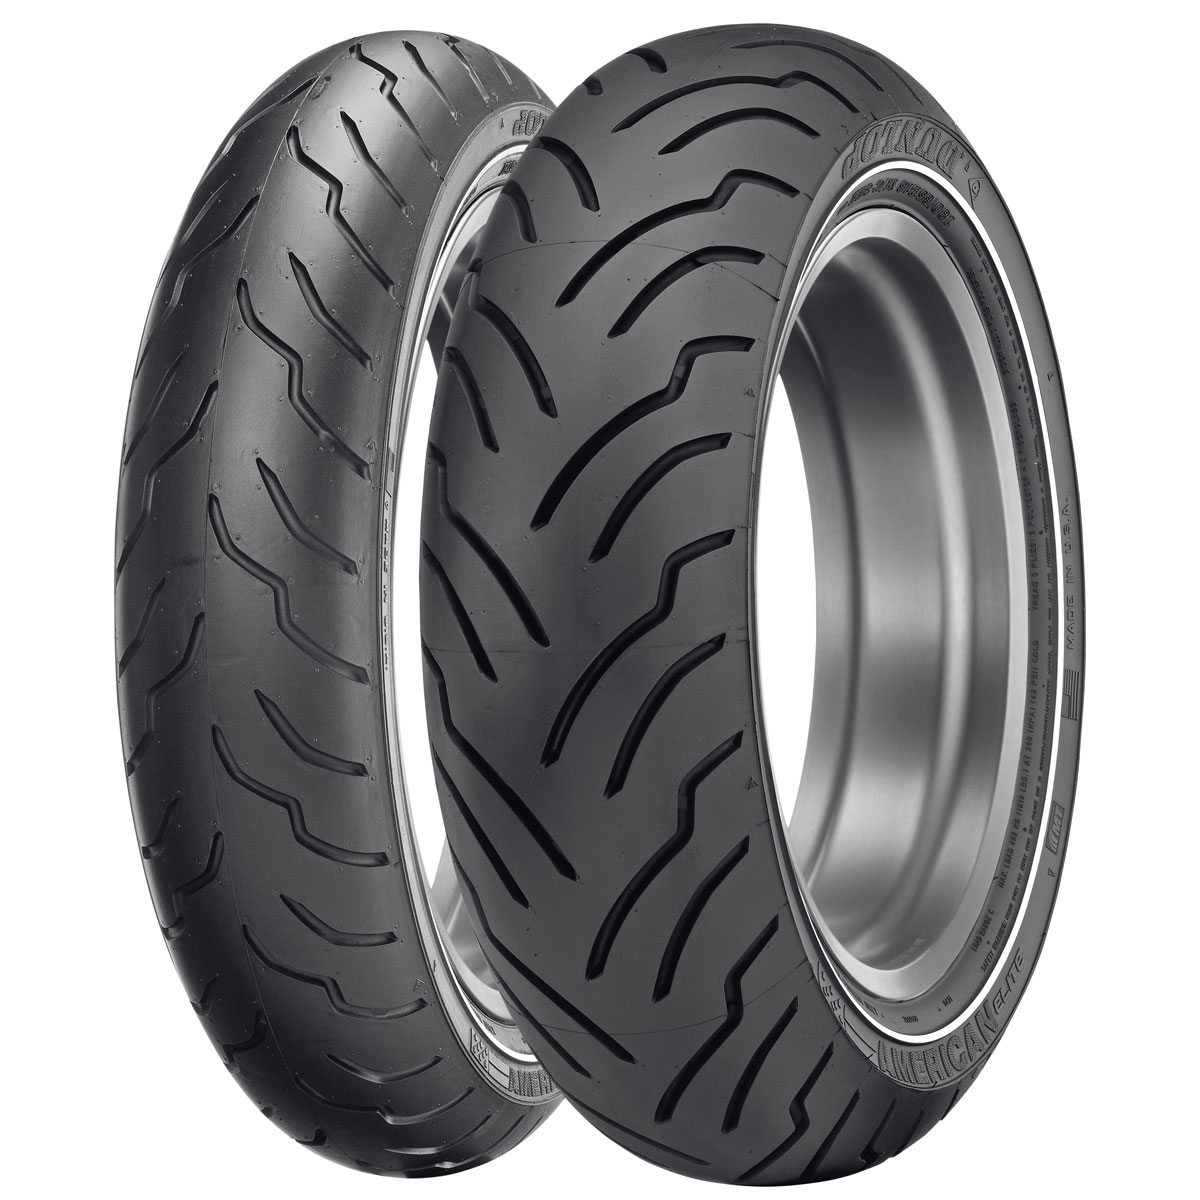 Dunlop American Elite 130/80B17 Narrow Whitewall Front Tire